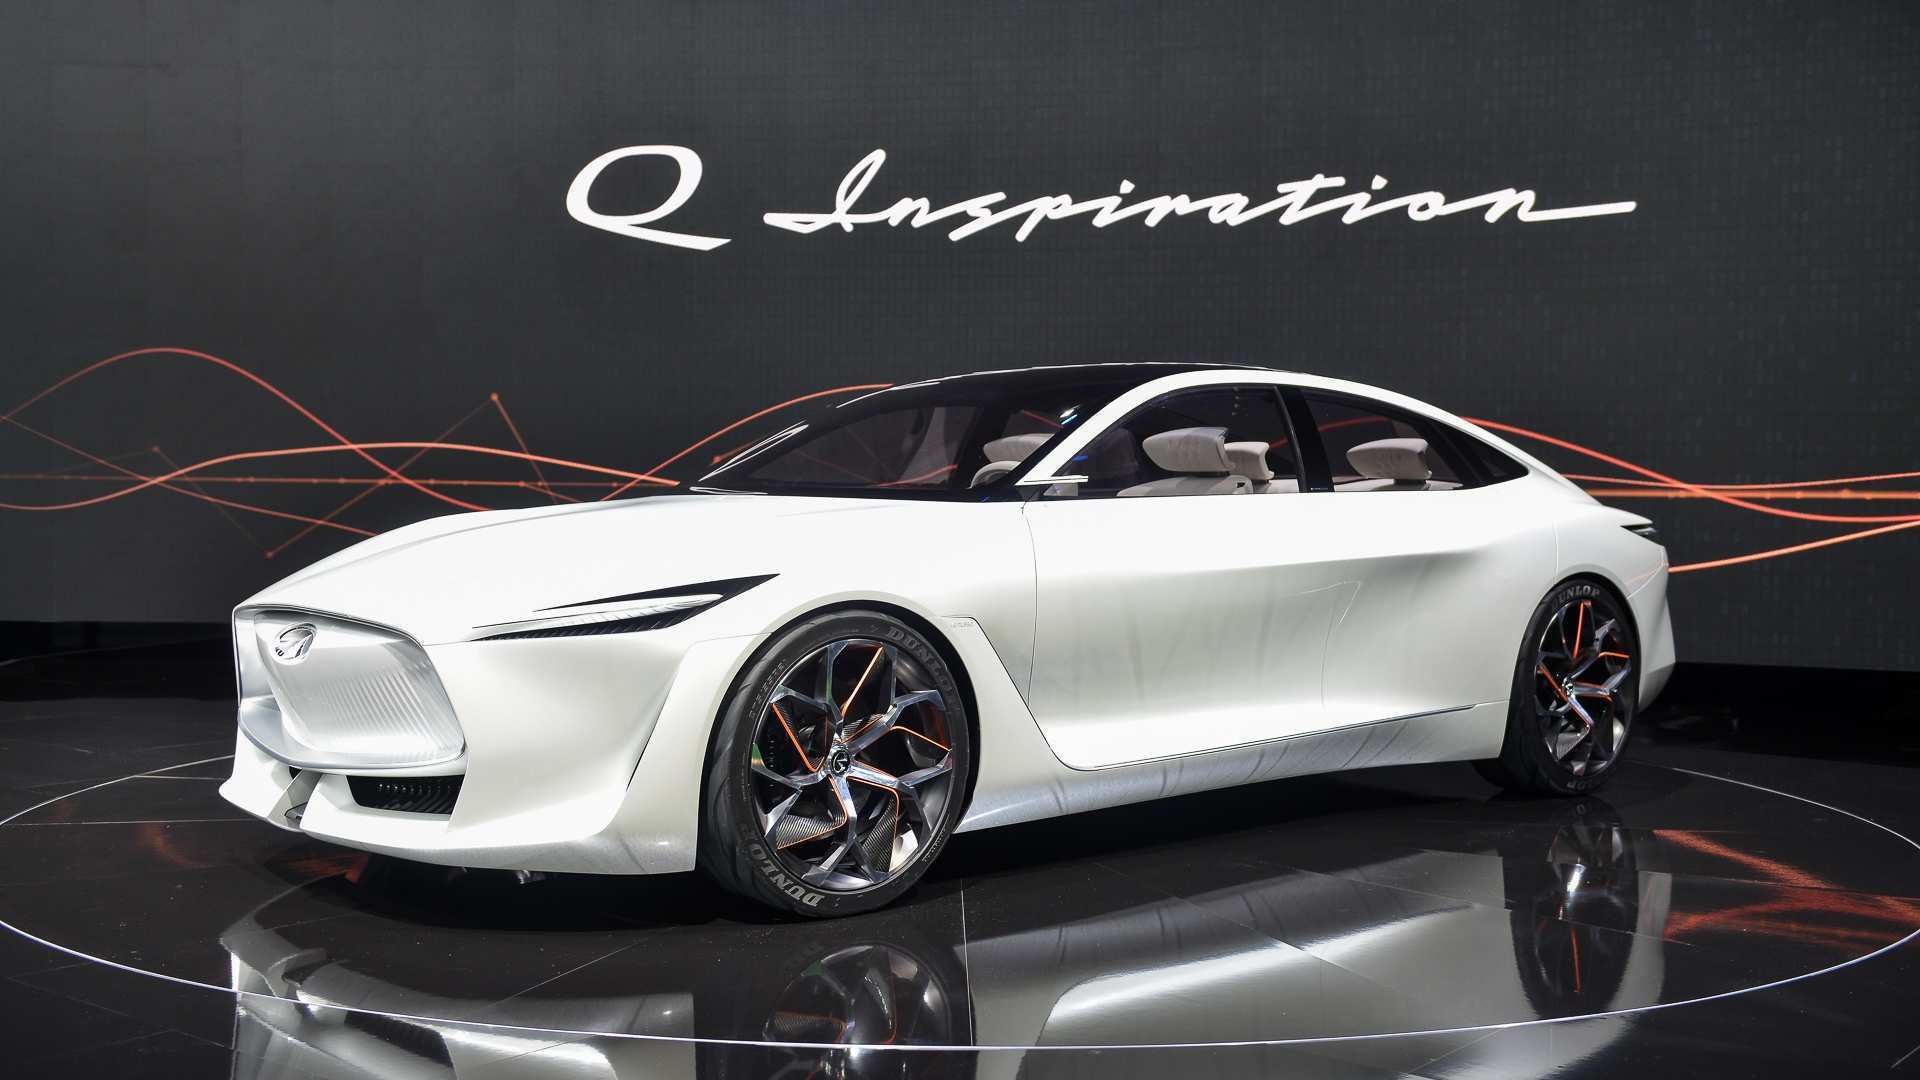 76 Concept of 2020 Infiniti Q70 New Concept New Concept for 2020 Infiniti Q70 New Concept